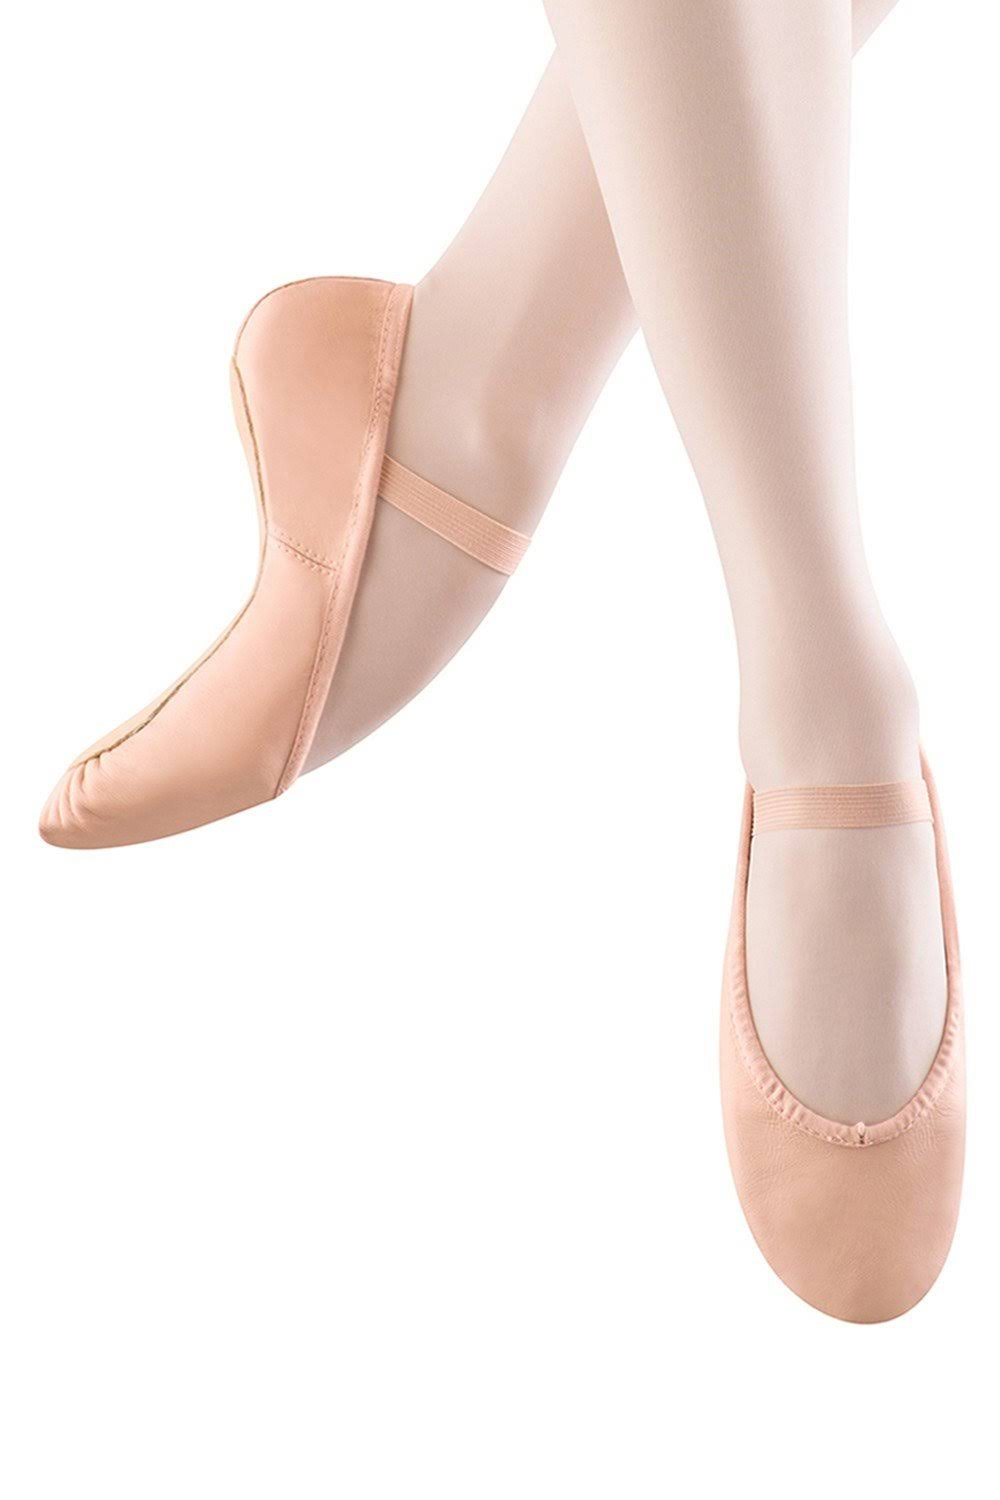 Bloch Dance Dansoft Ballet Slipper - Pink